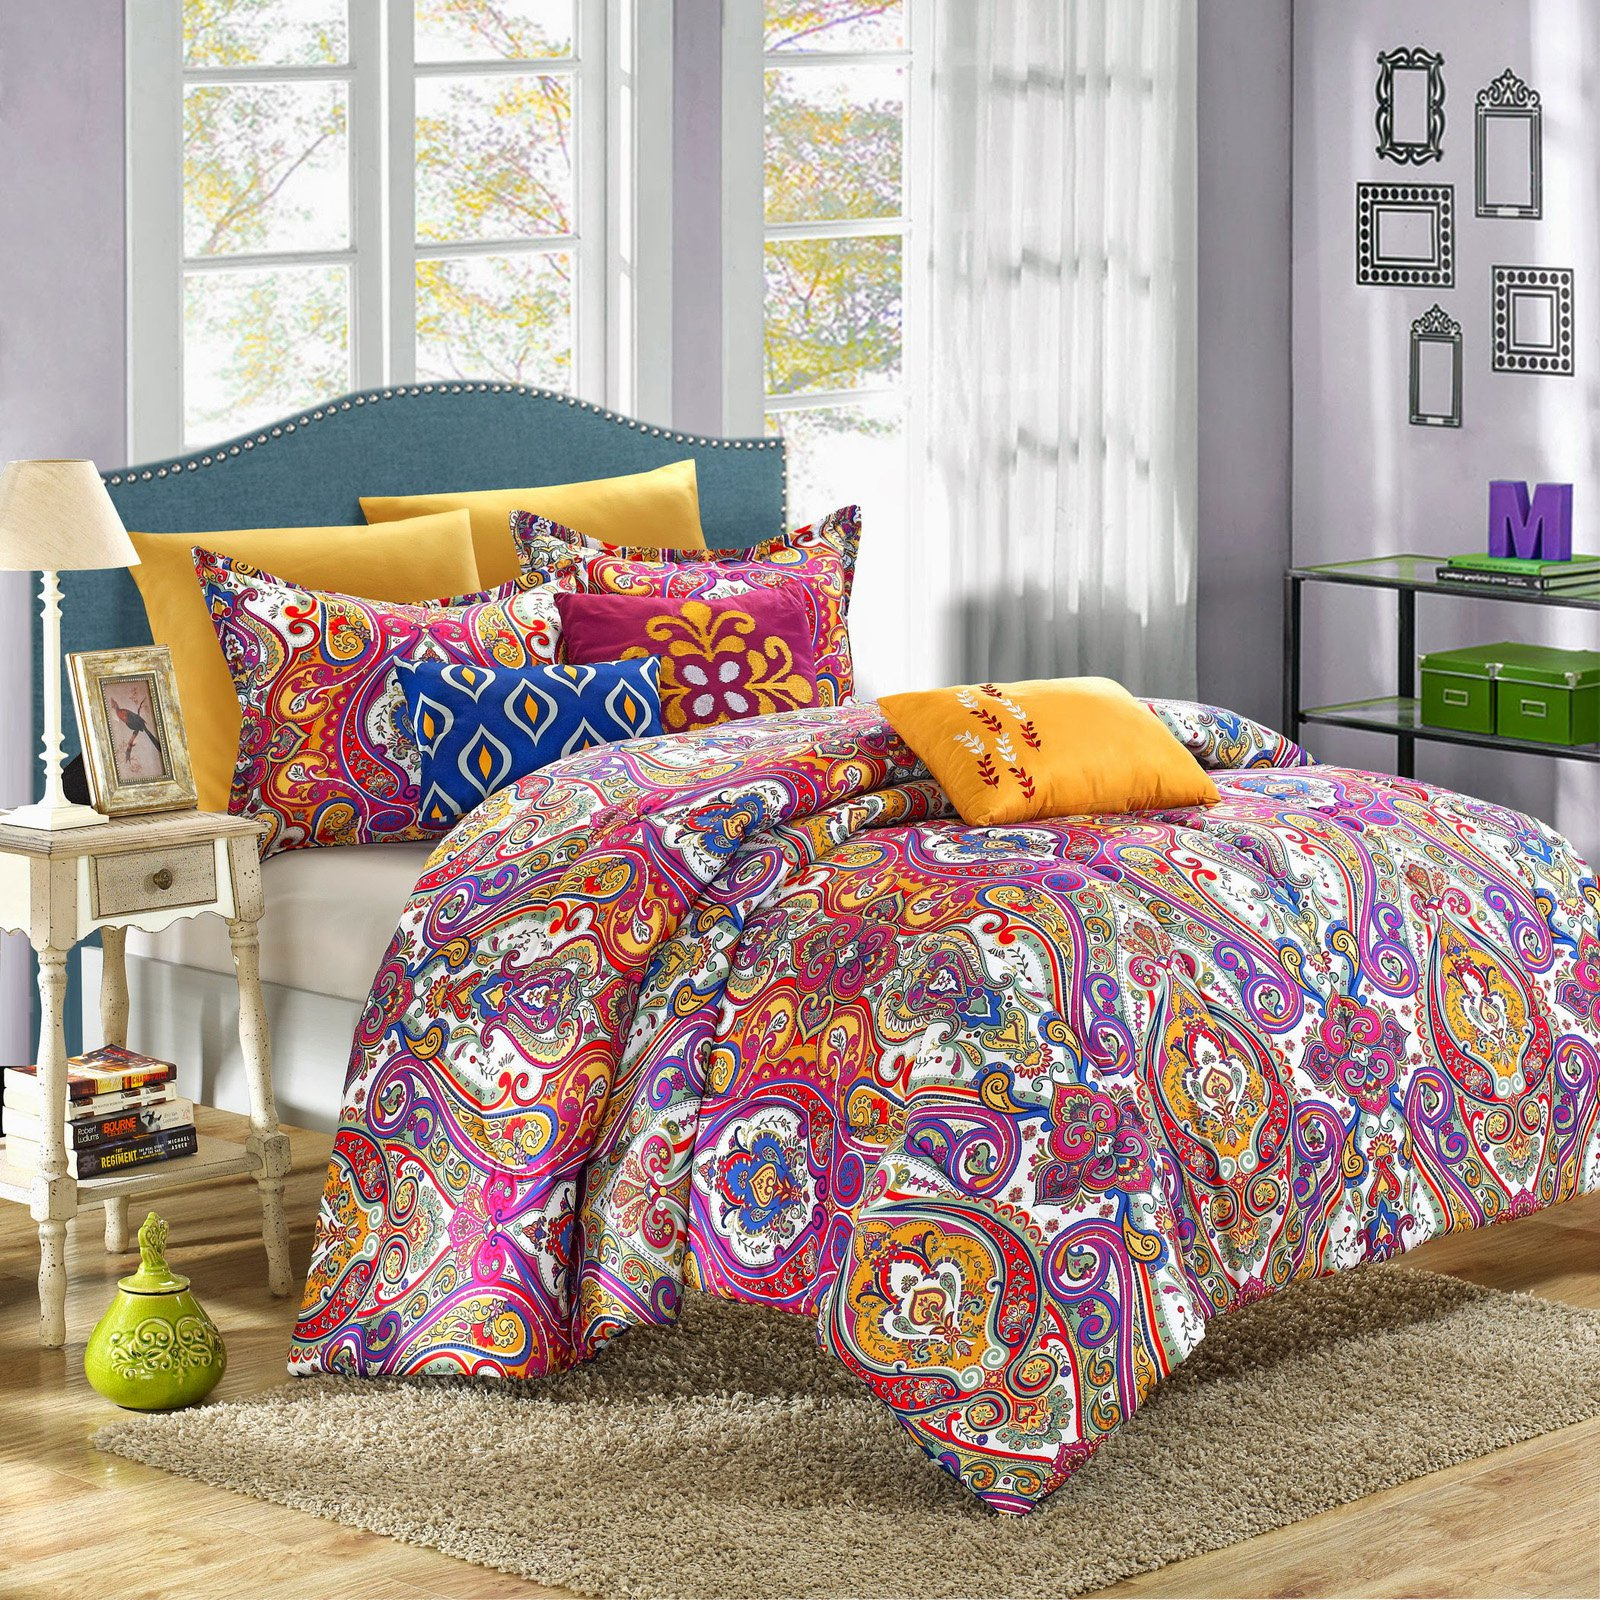 Chic Home Mumbai Reversible Luxury Bed in a Bag Comforter Set